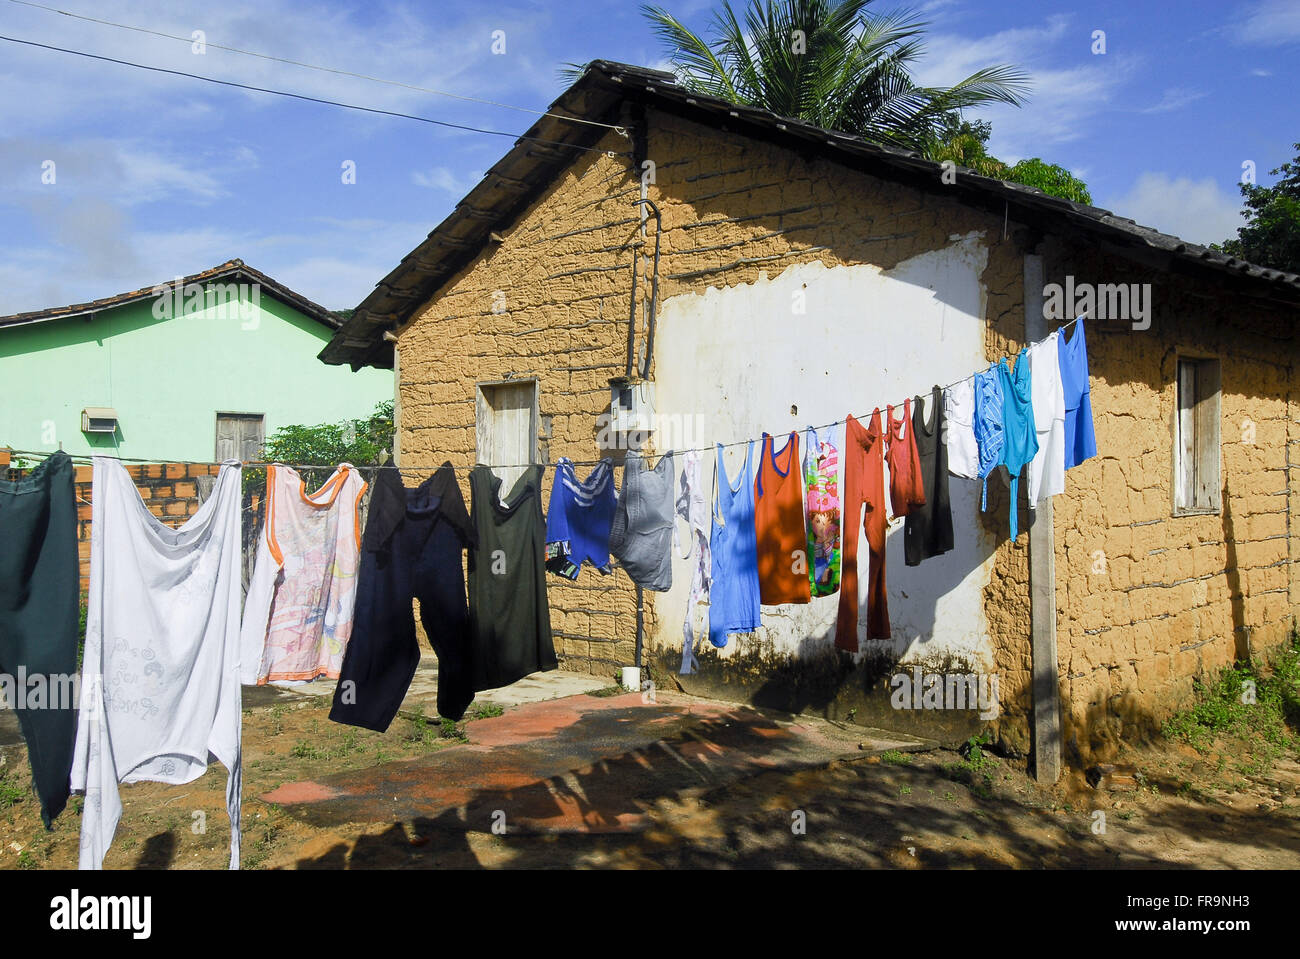 Clothesline with clothes in the backyard of house wattle-and-daub - Stock Image